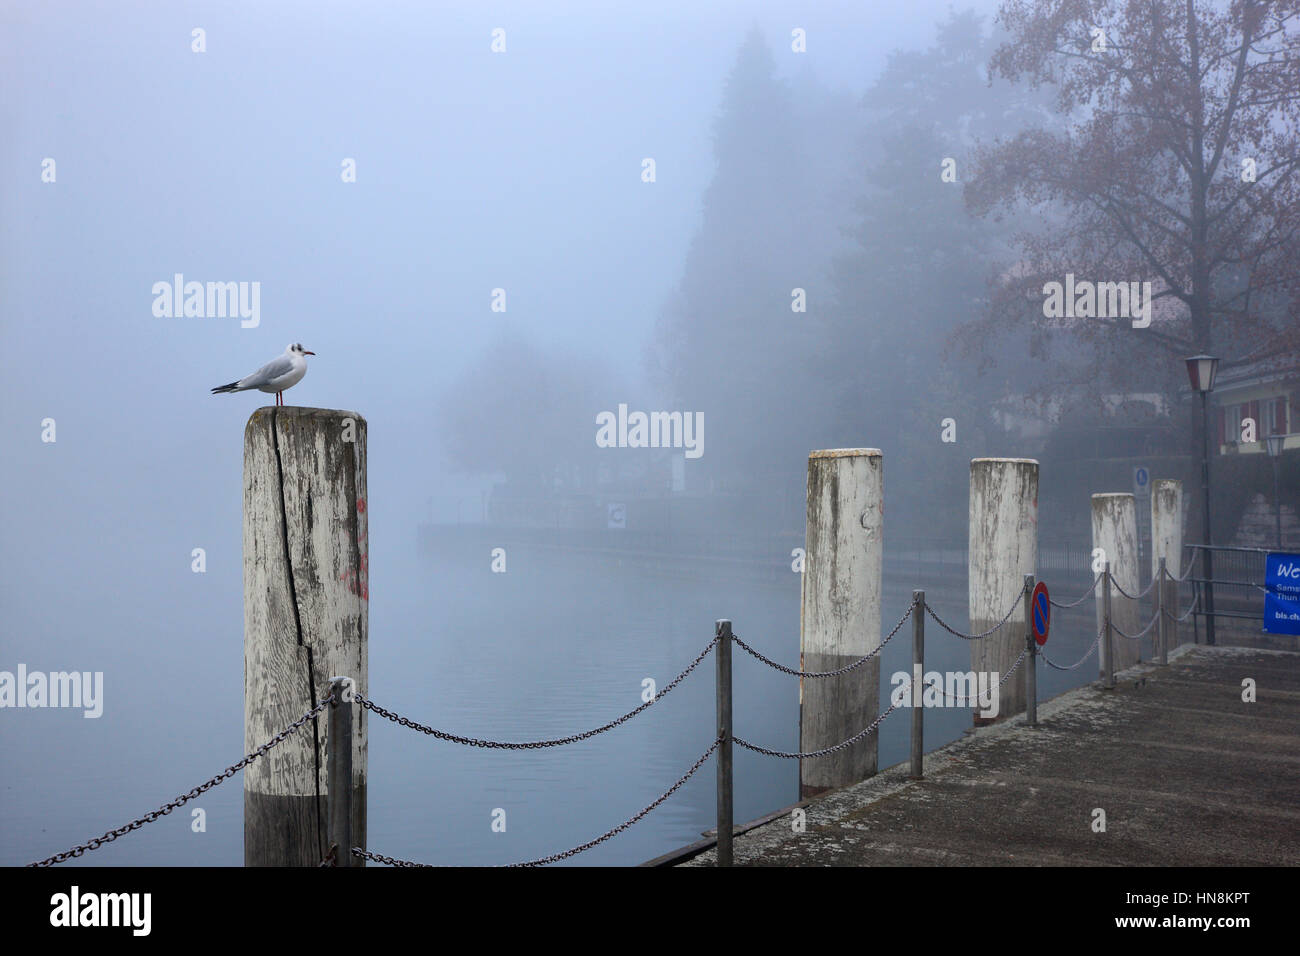 Dock by river Aare, Thun town, Bernese Oberland, Switzerland - Stock Image